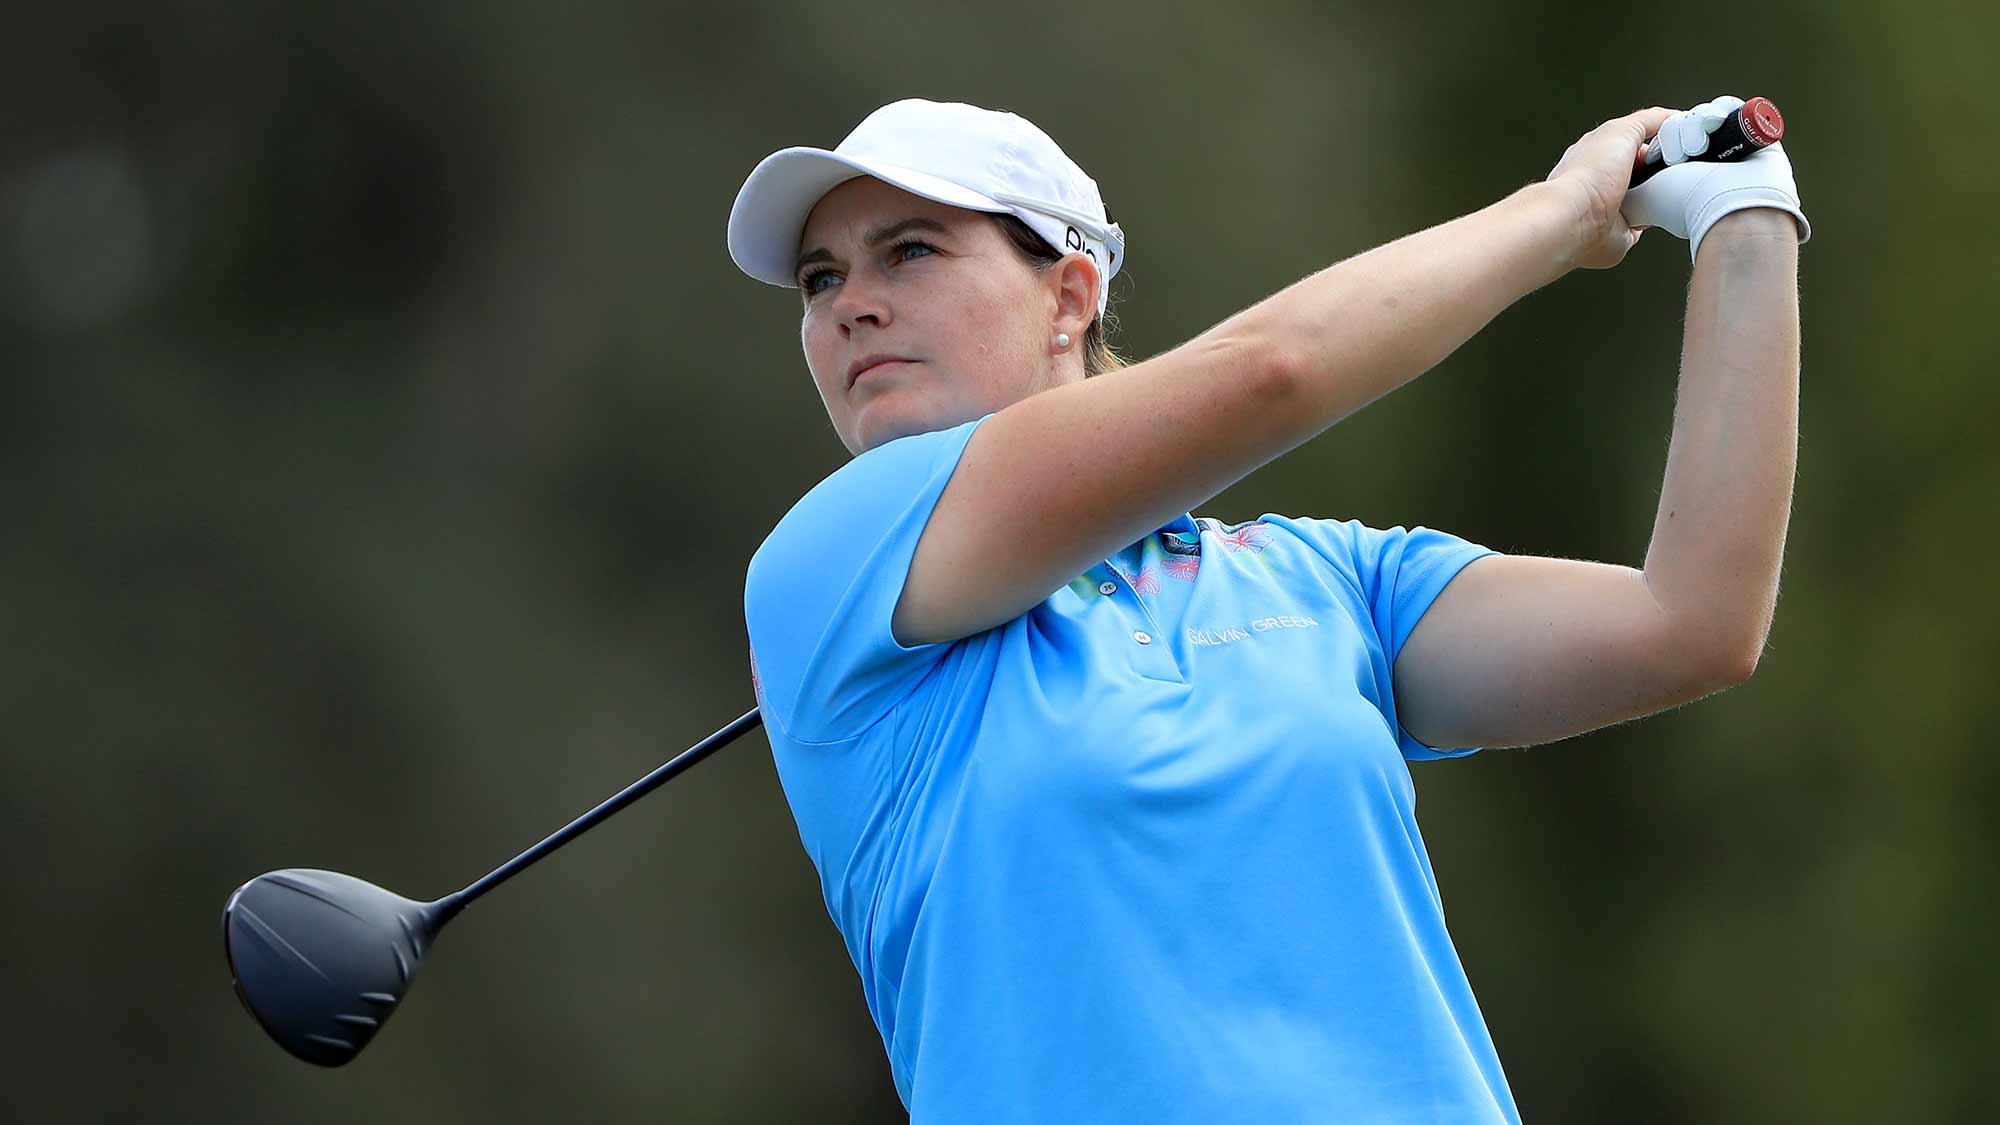 Caroline Masson of Germany plays a shot on the third hole during the third round of the CME Group Tour Championship at Tiburon Golf Club on November 23, 2019 in Naples, Florida